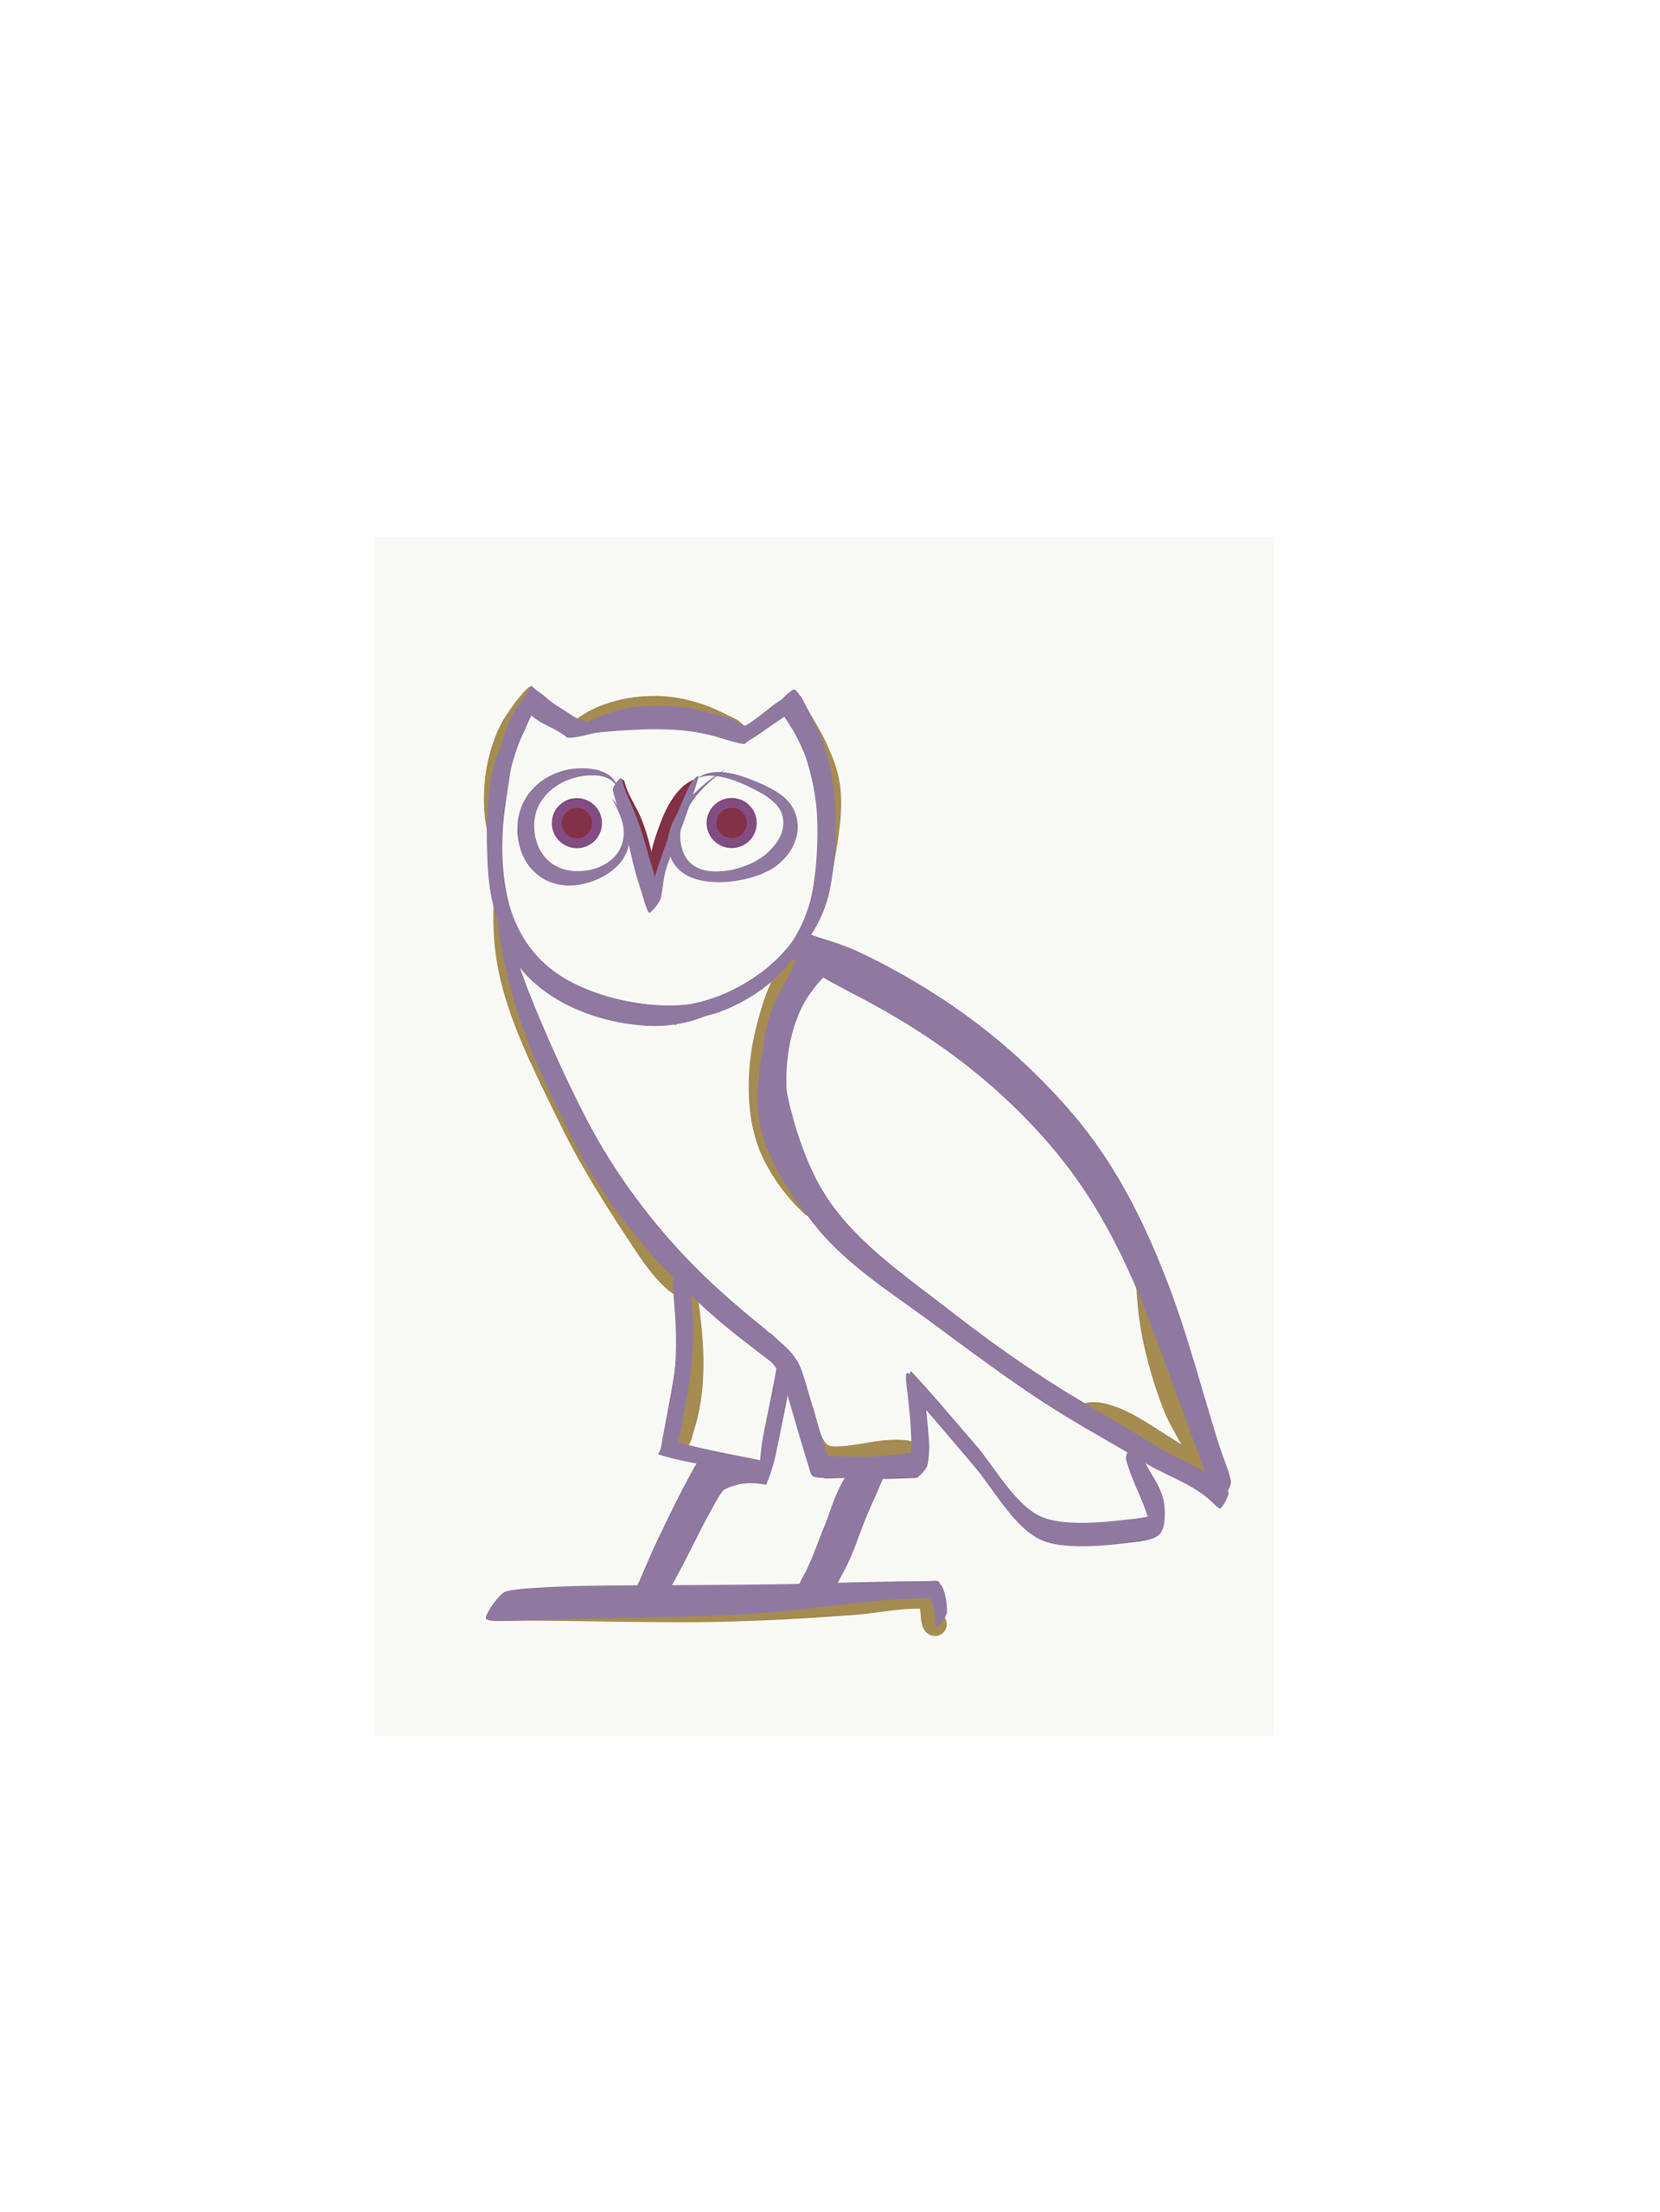 Ovo owl png. Images in collection page